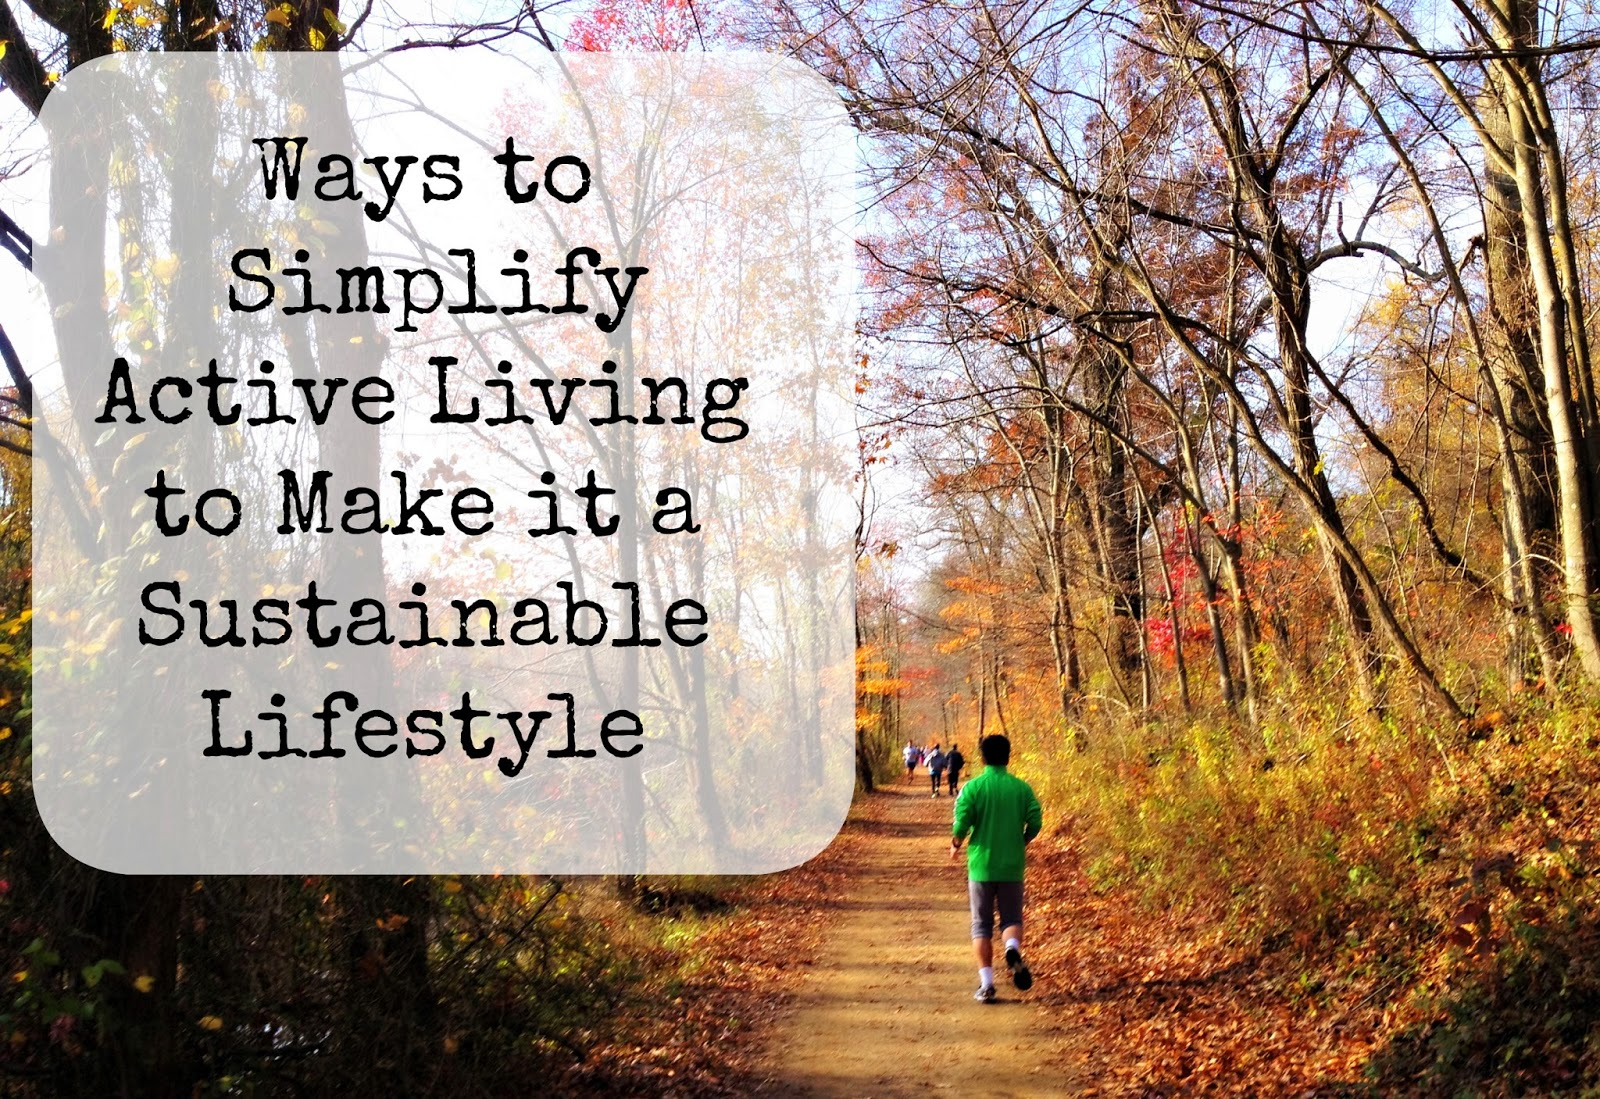 Ways to Simplify Active Living to Make it a Sustainable Lifestyle